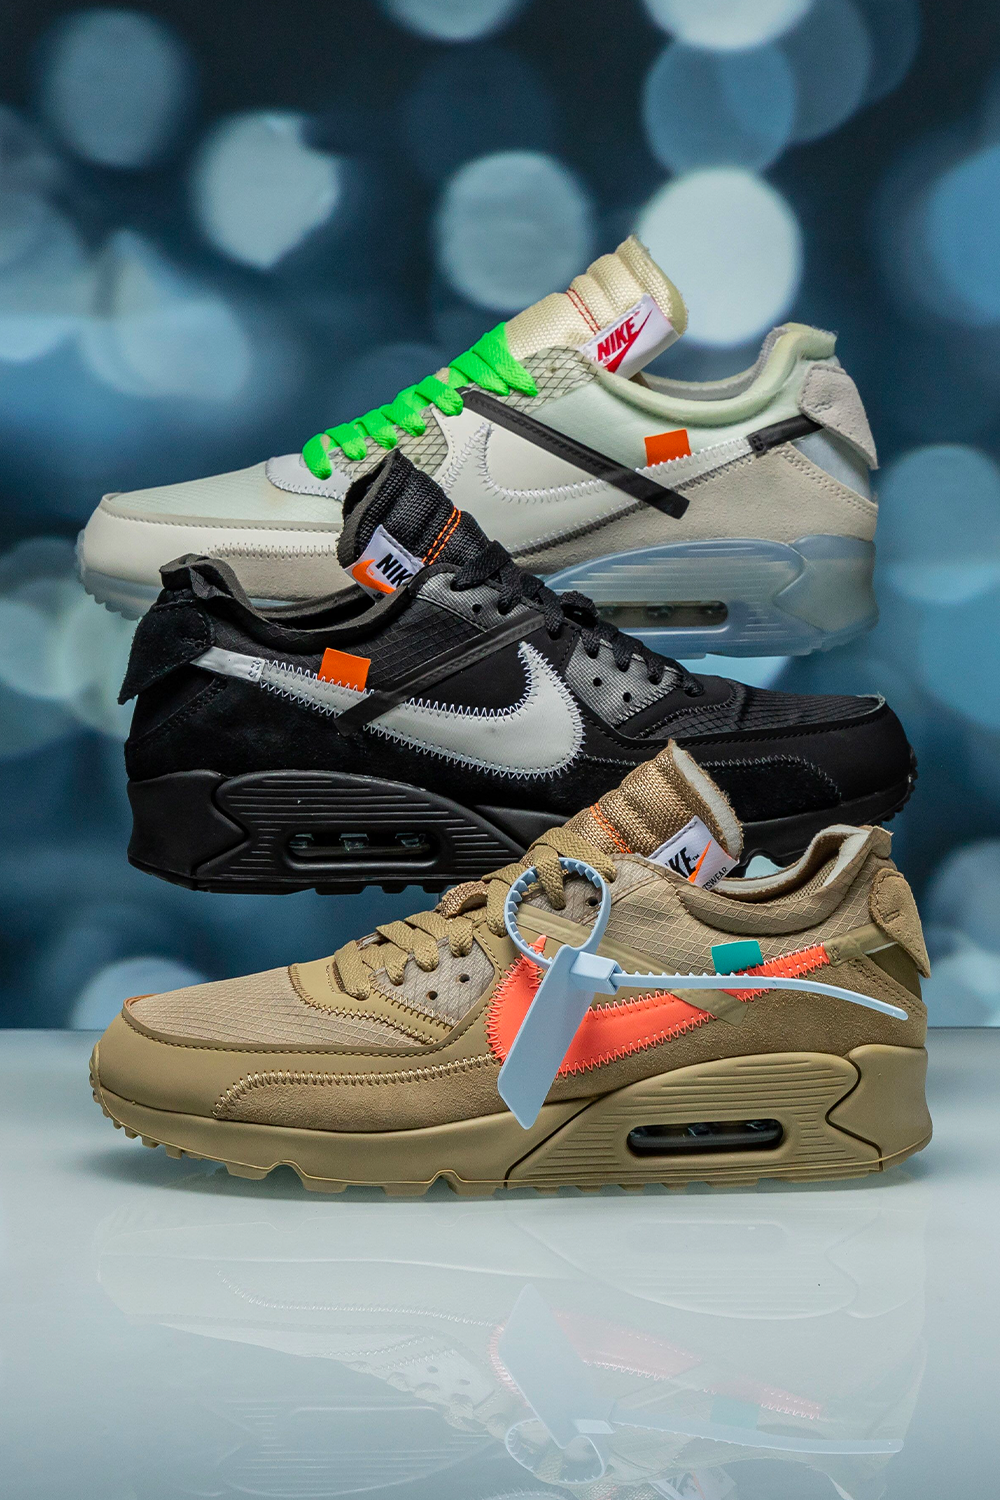 The three variations of the Off White x Nike Air Max 90 are